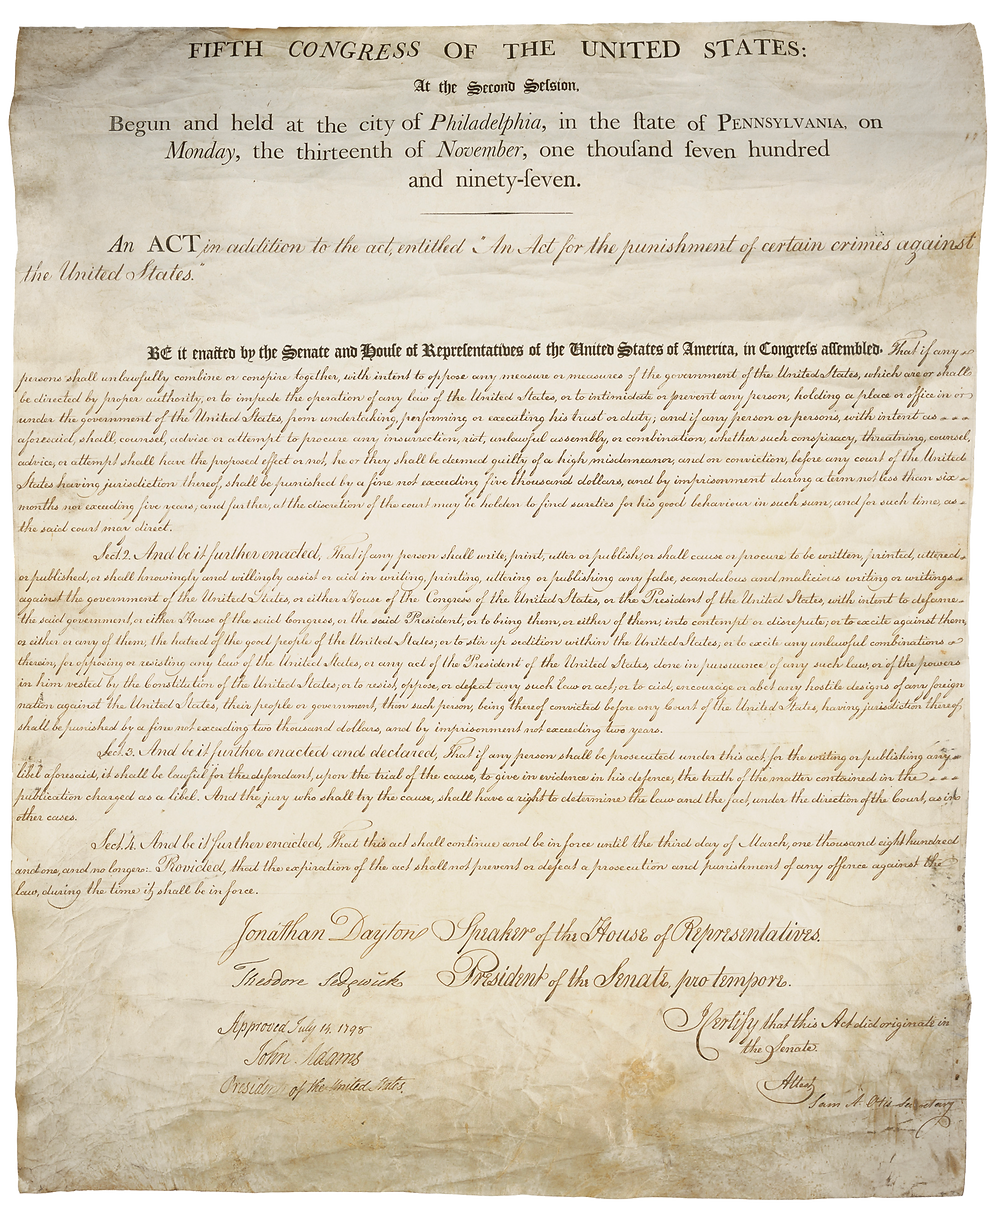 The Sedition Act of 1798